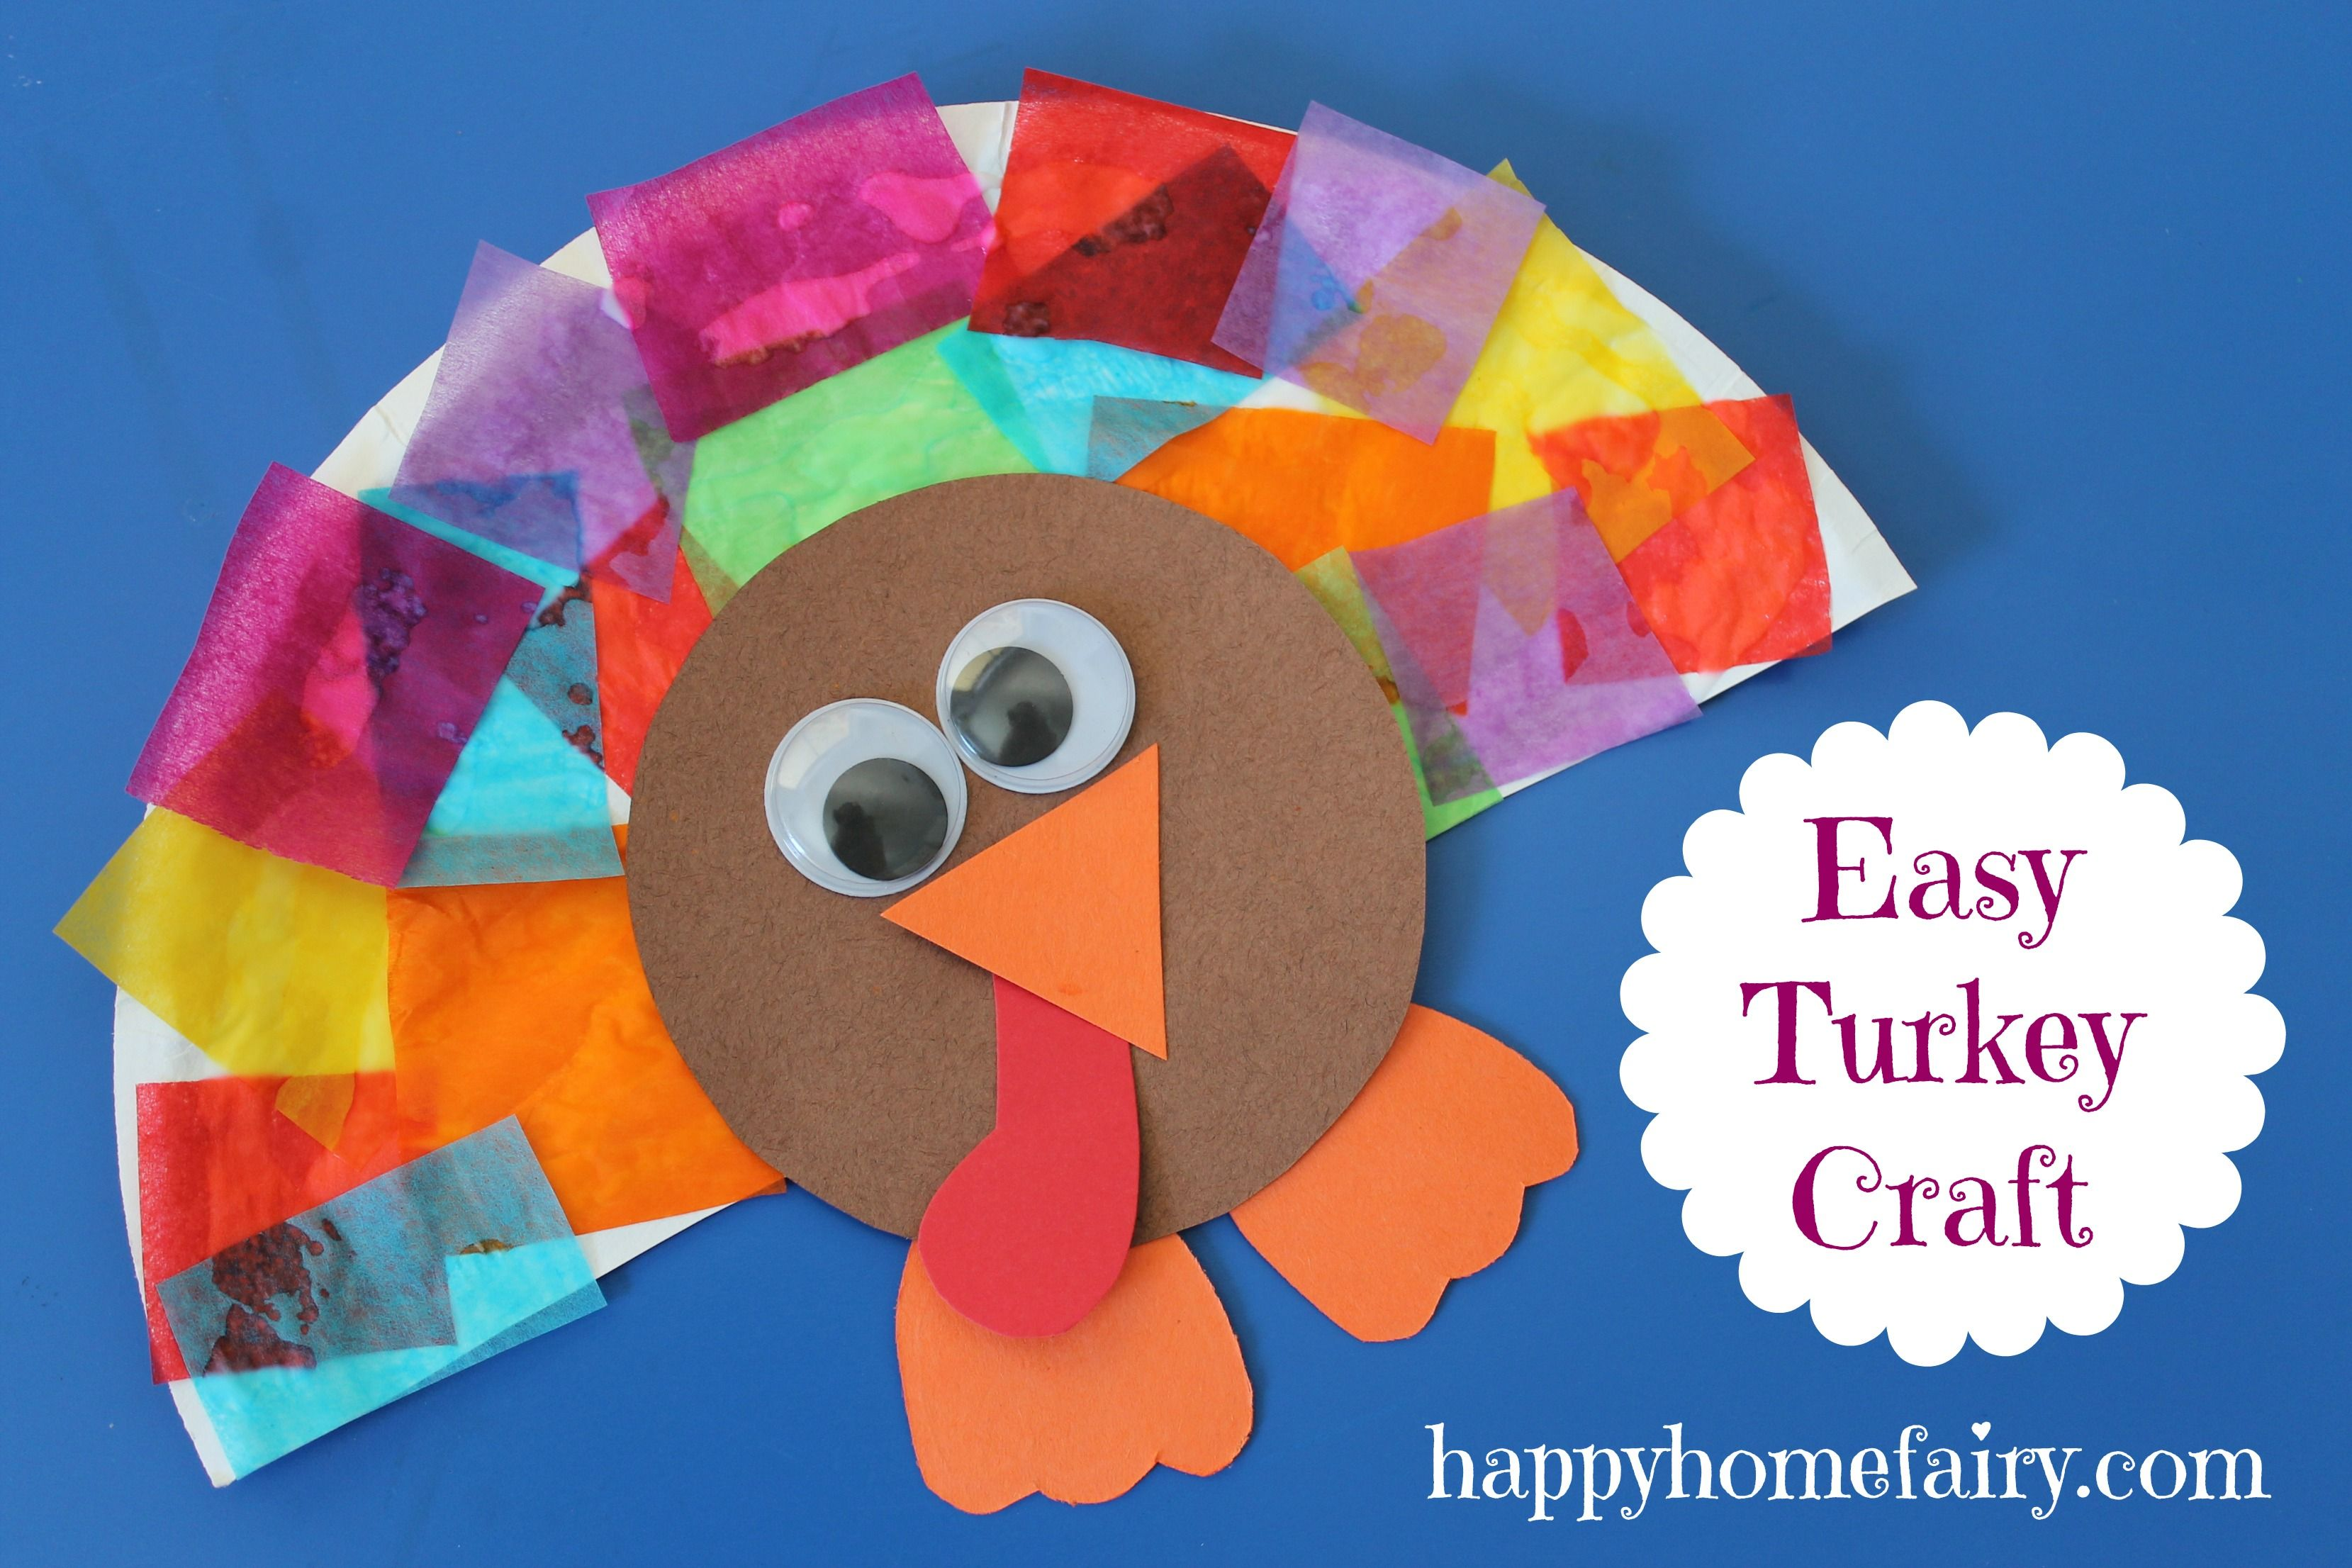 Superior Thanksgiving Crafts For Toddlers Part - 12: Tissue Paper Turkey Craft 10--happy Homefairy.com